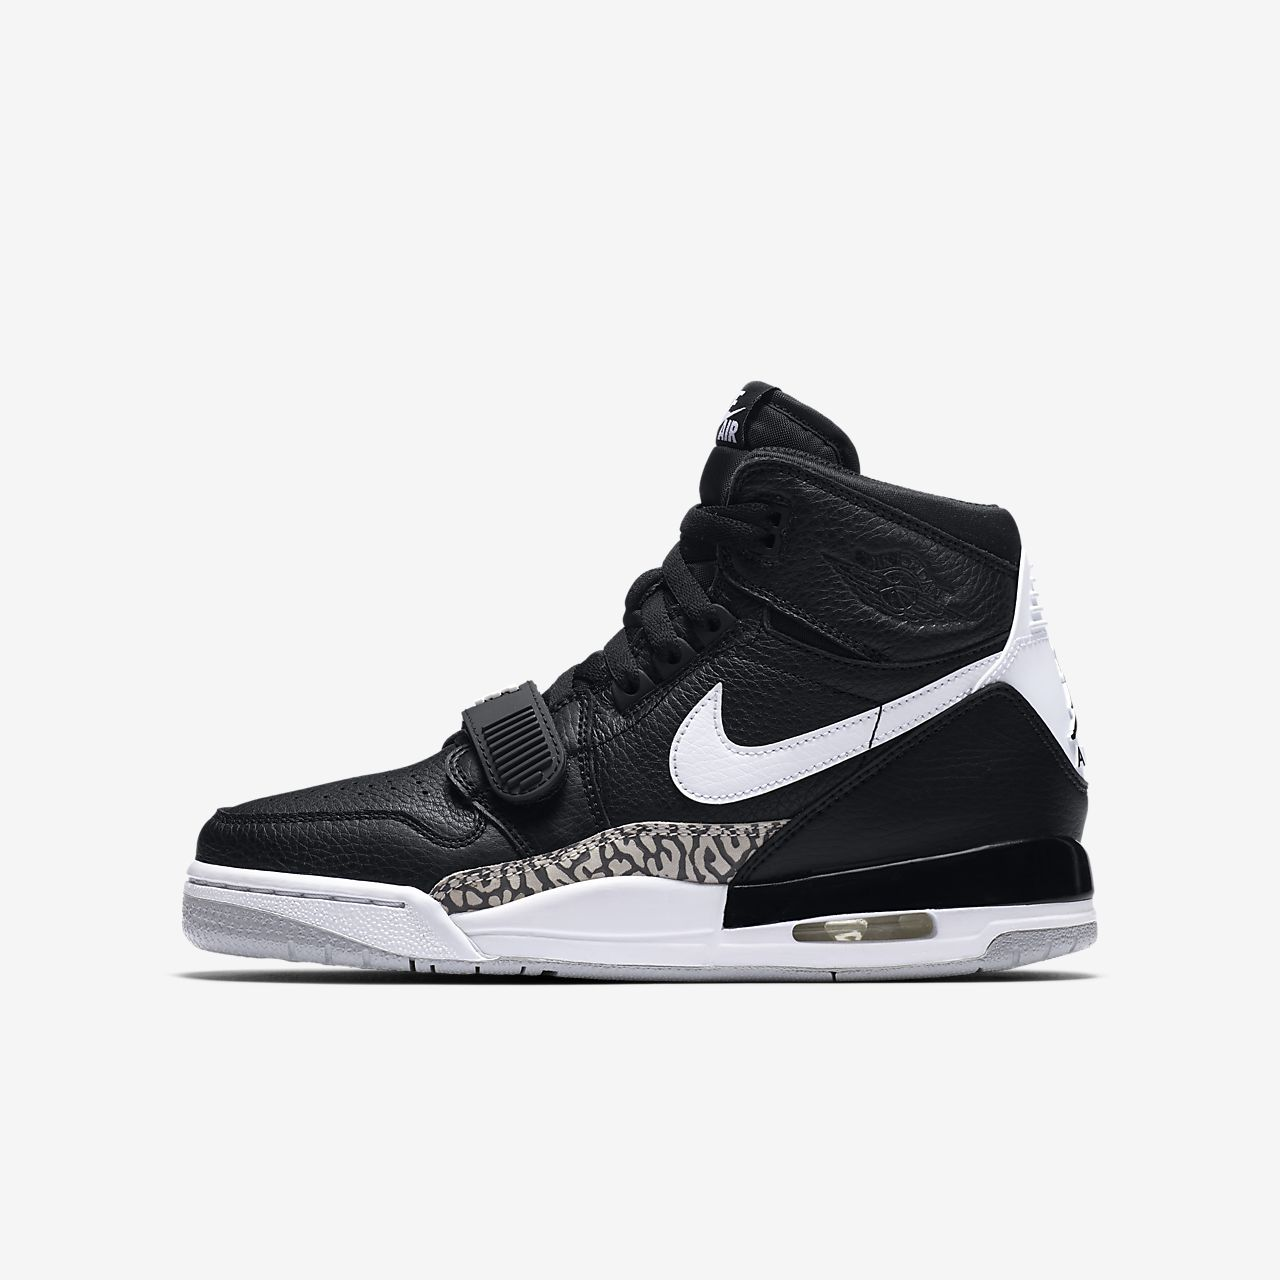 newest collection e145e 10e73 Calzado para niños talla grande Air Jordan Legacy 312